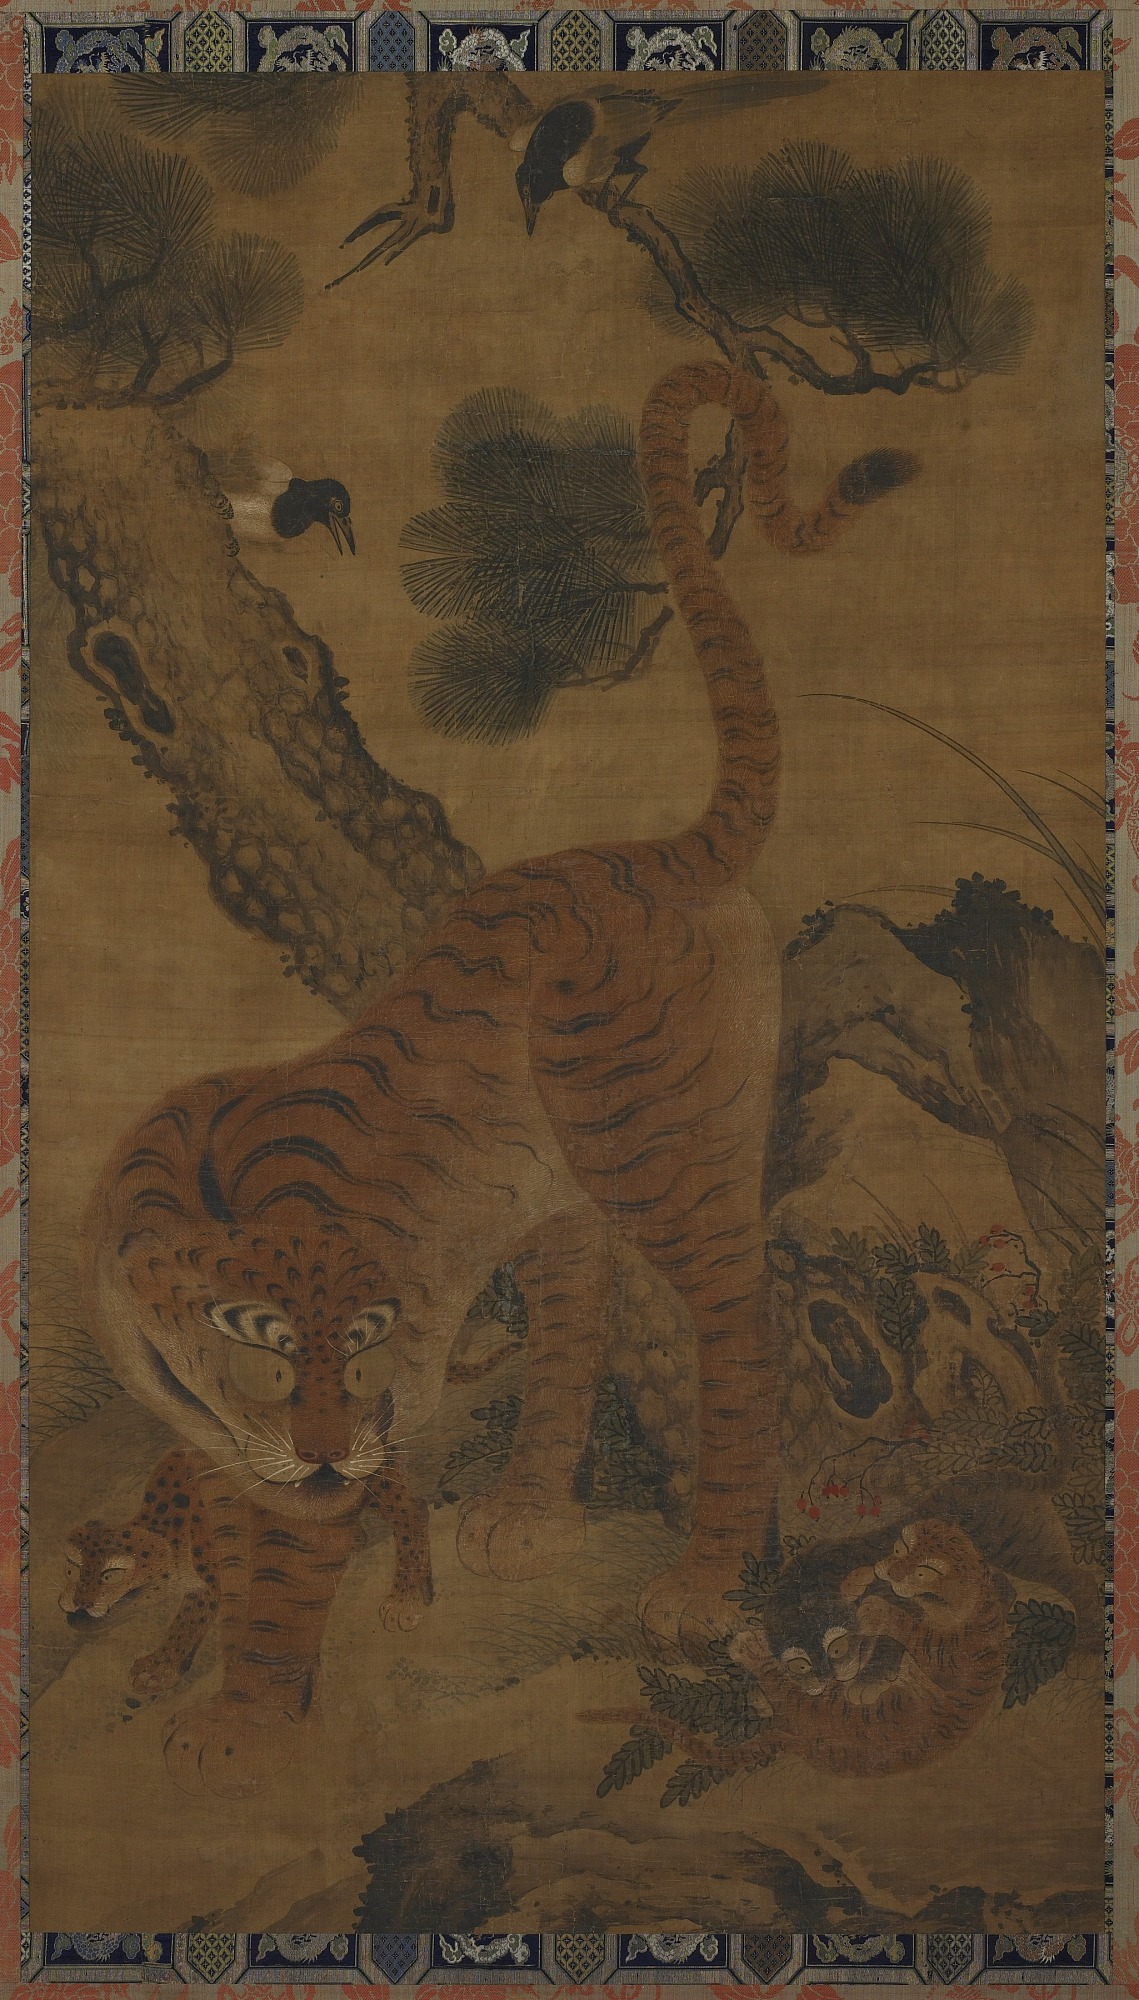 : Tiger with cubs and magpies